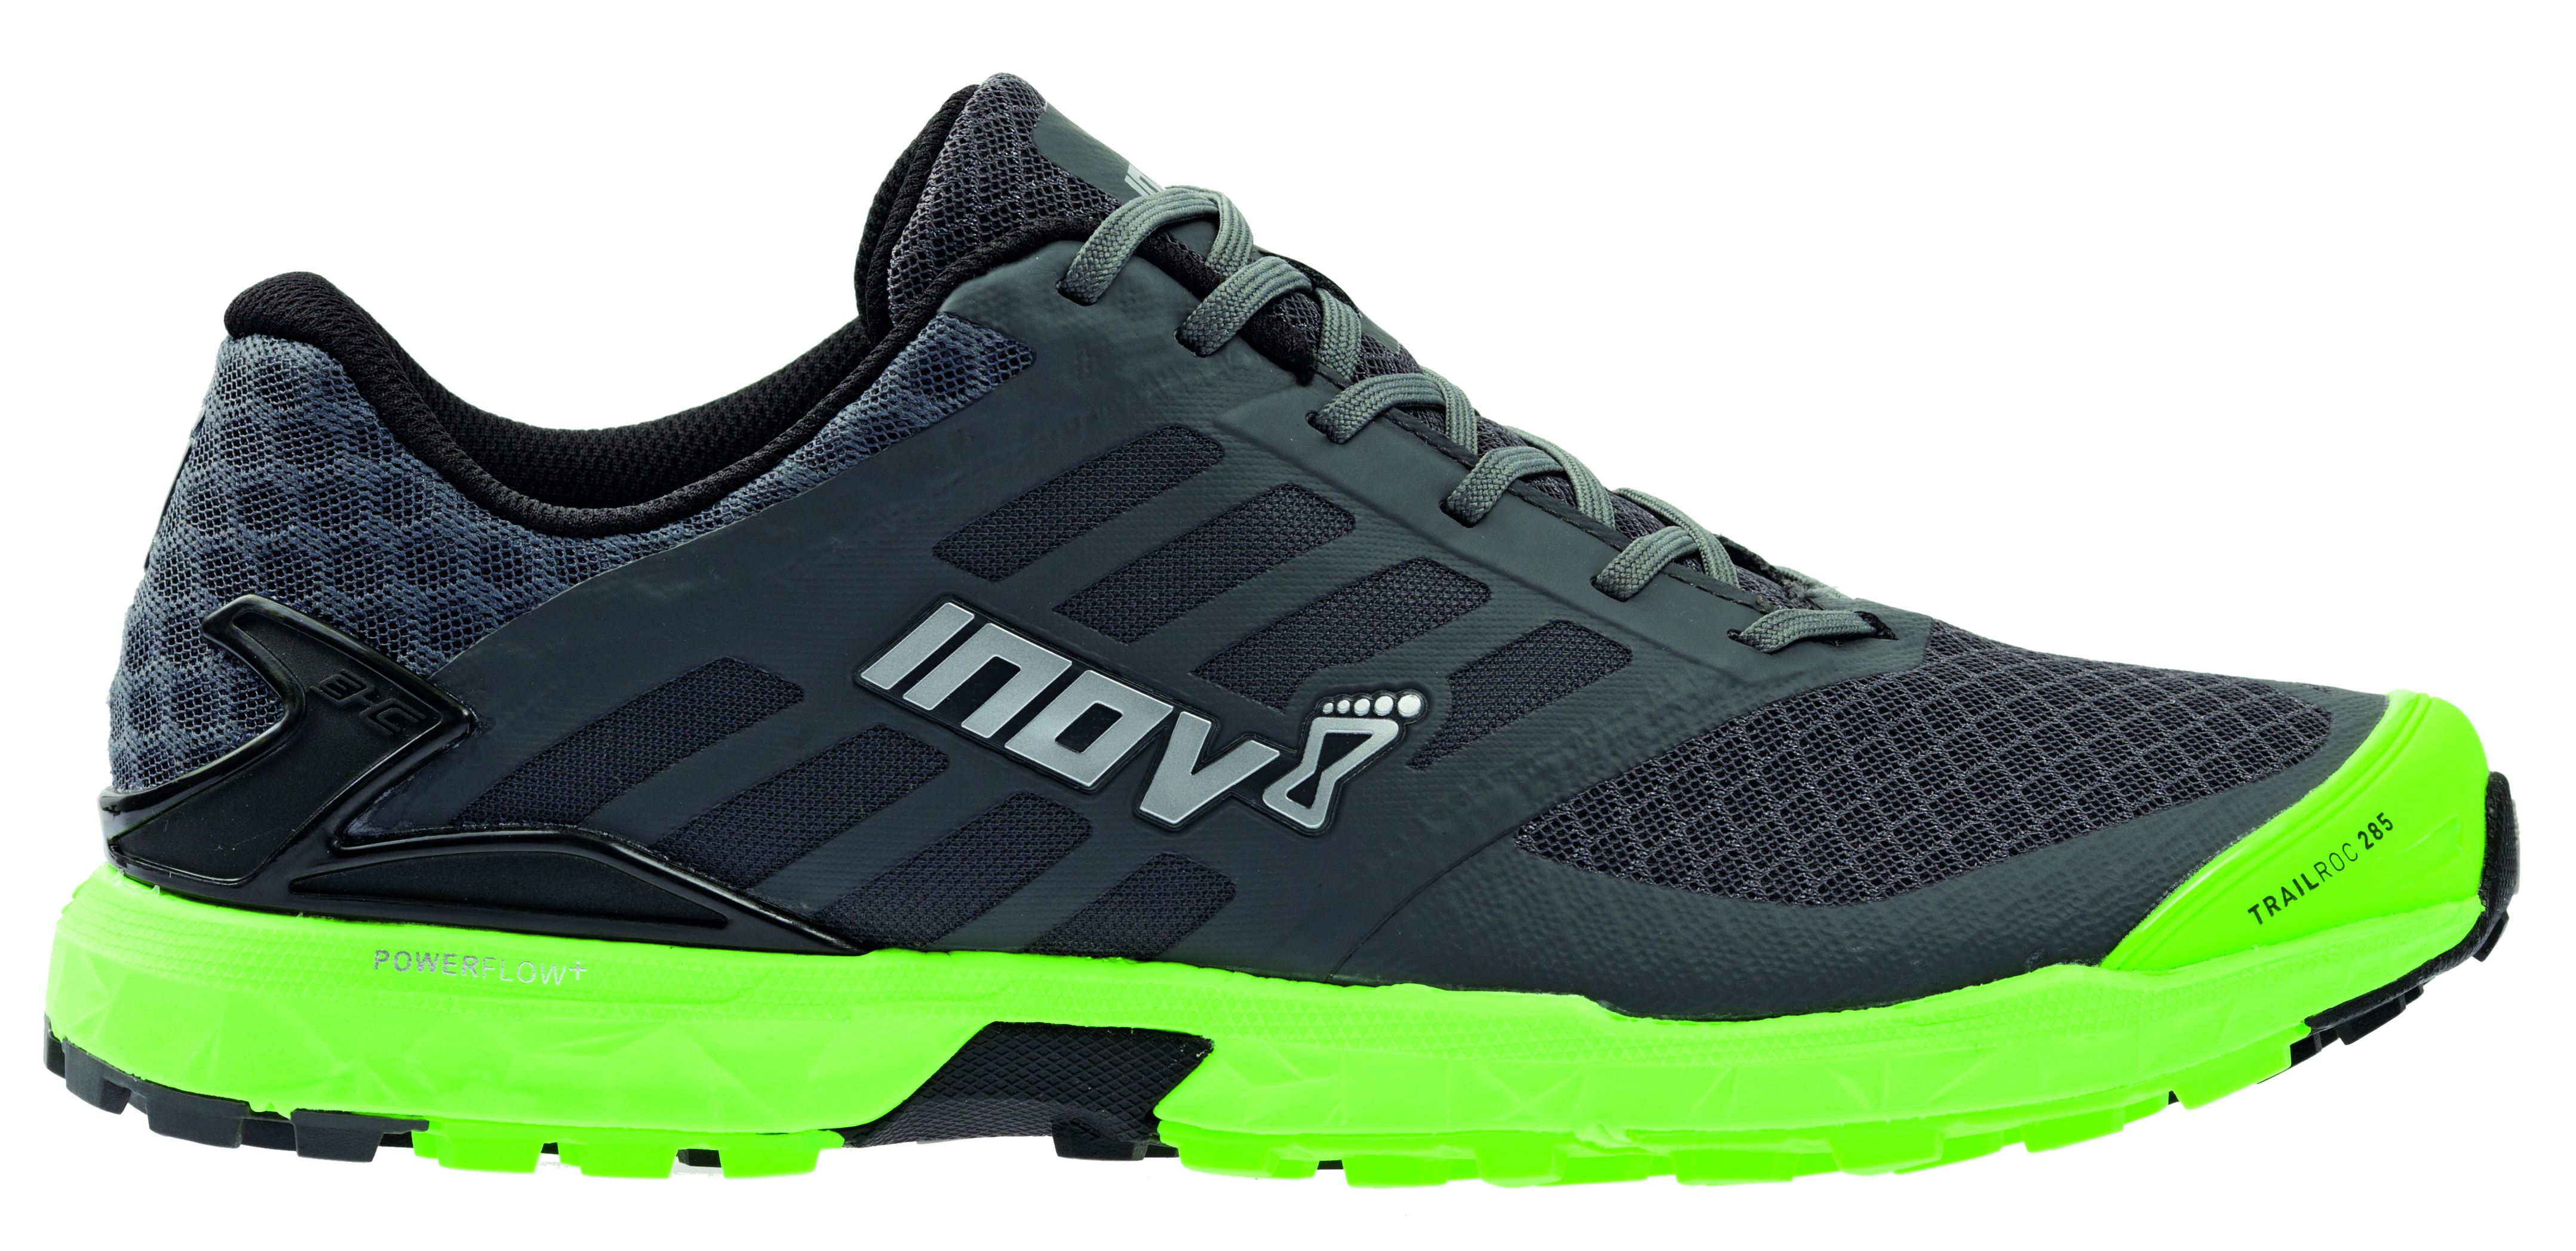 Most Stable Hoka Trail Running Shoes